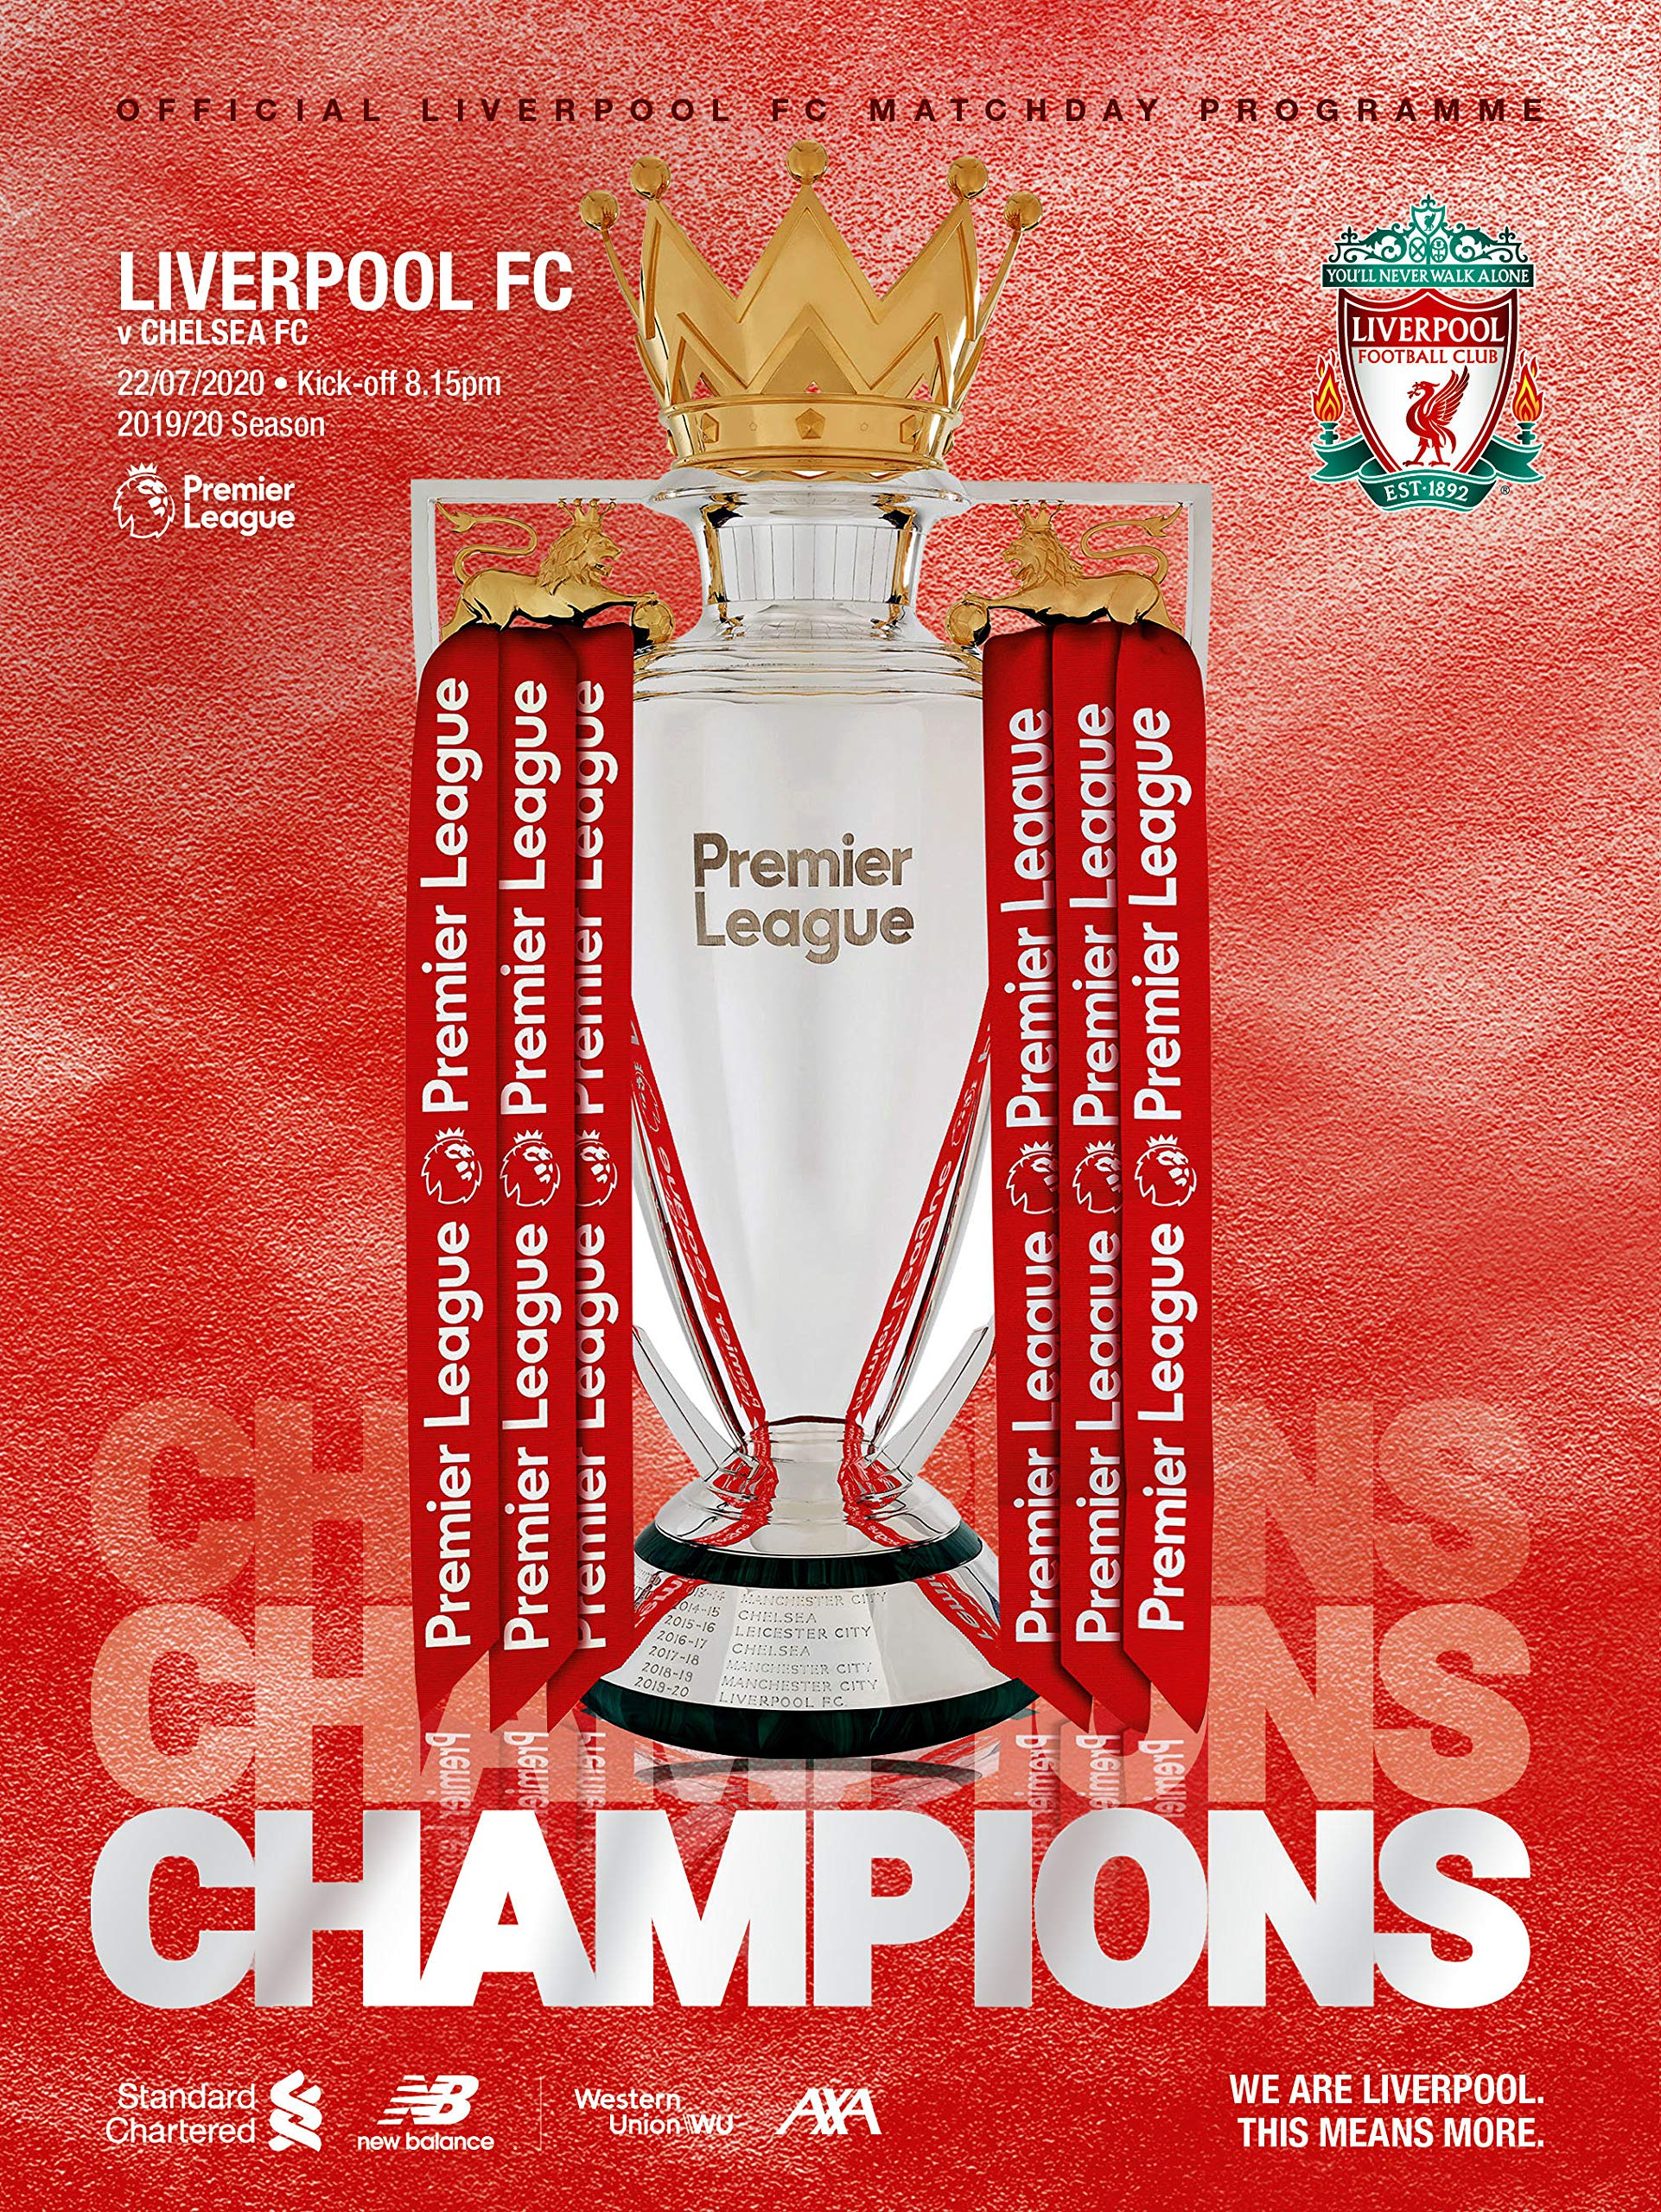 Liverpool FC v Chelsea FC Champions Edition Official